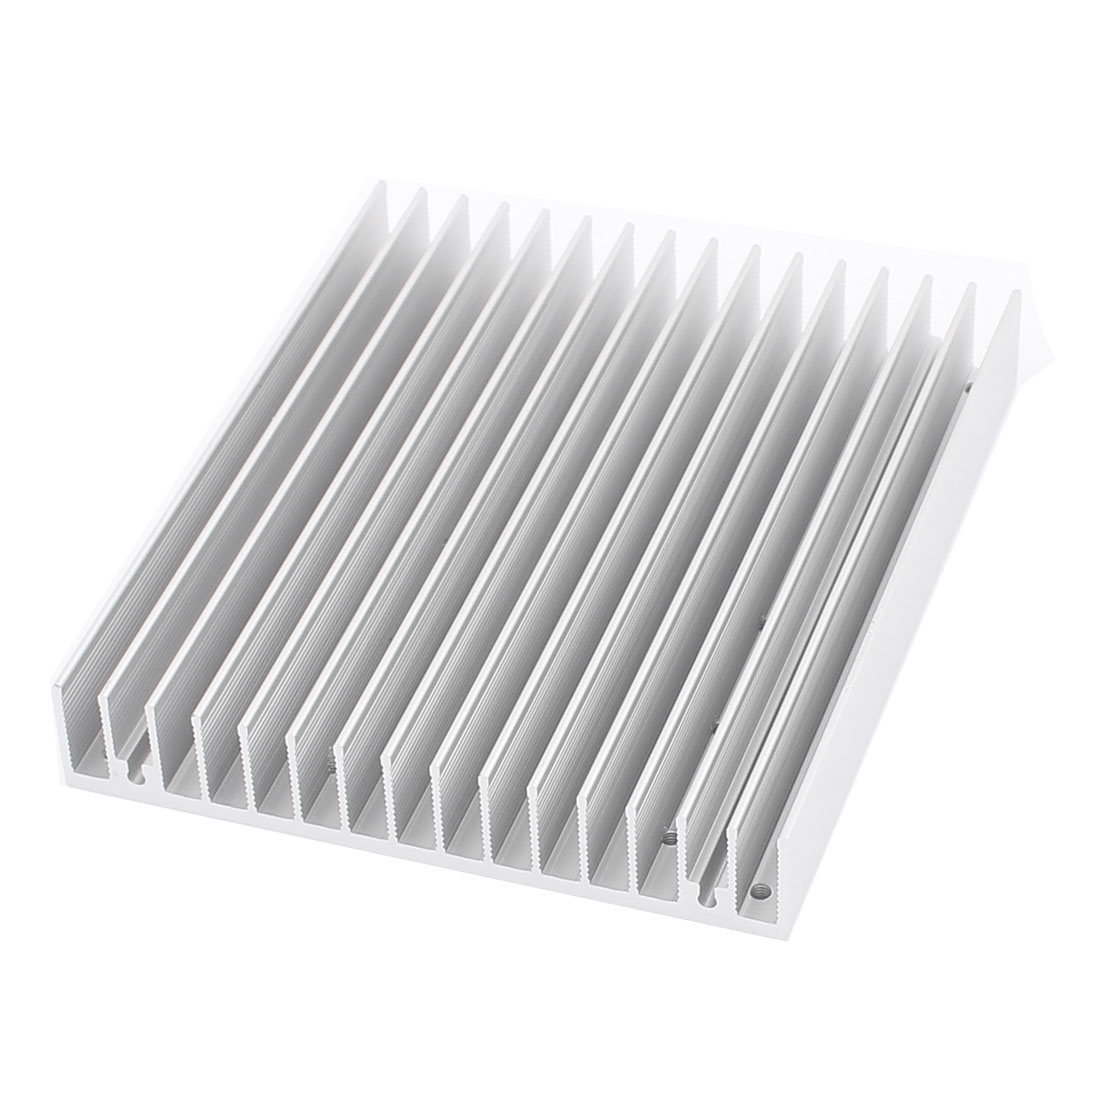 Silver Tone 120x100x18mm Aluminum Rectangle Heat Diffuse Cooling Fin Heatsink 10 Holes